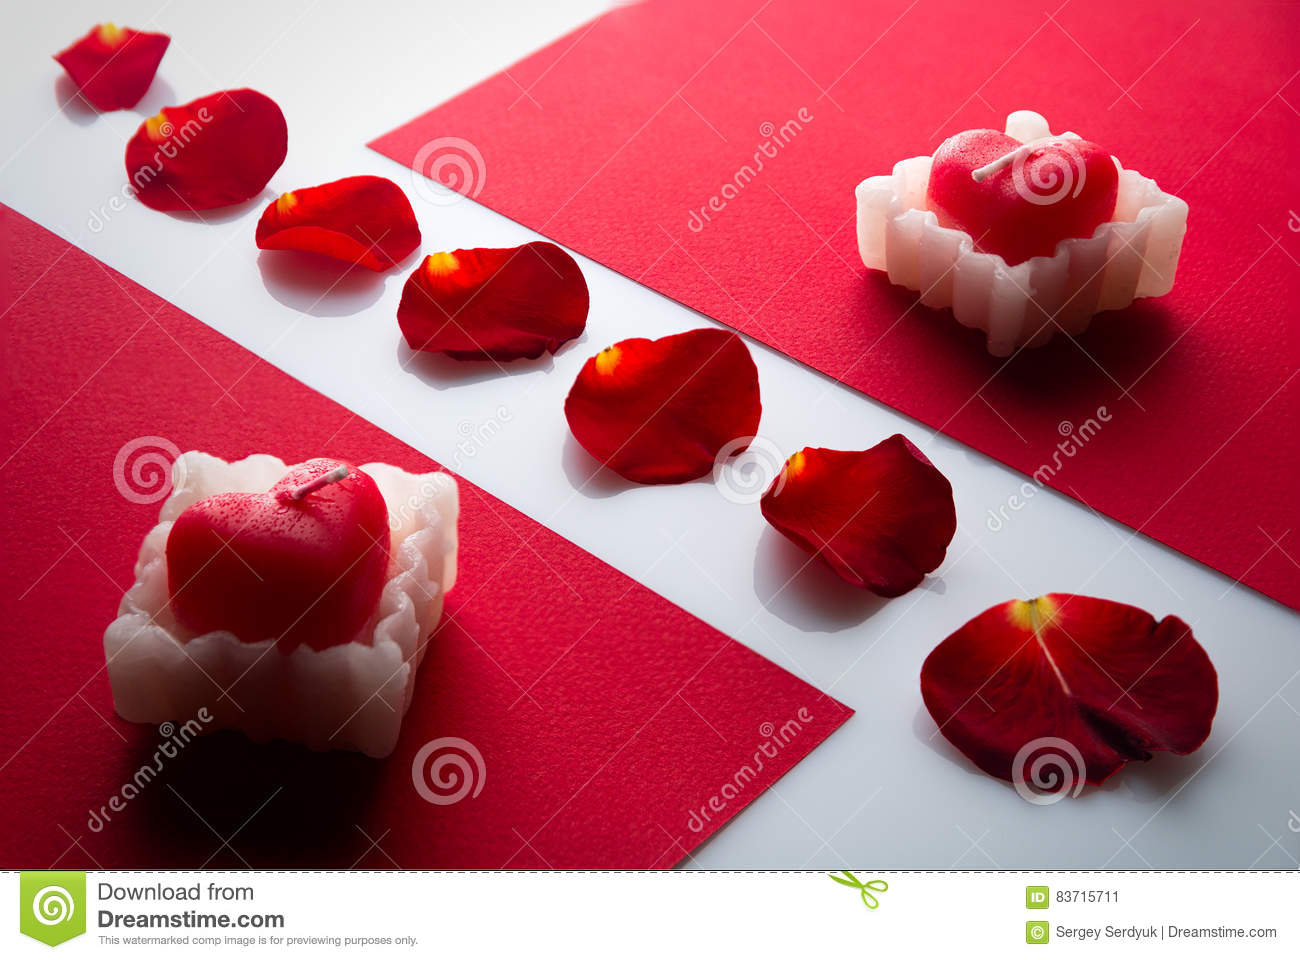 Heart Candle On The Red Cartons, And Rose Petals In Between Stock Photo